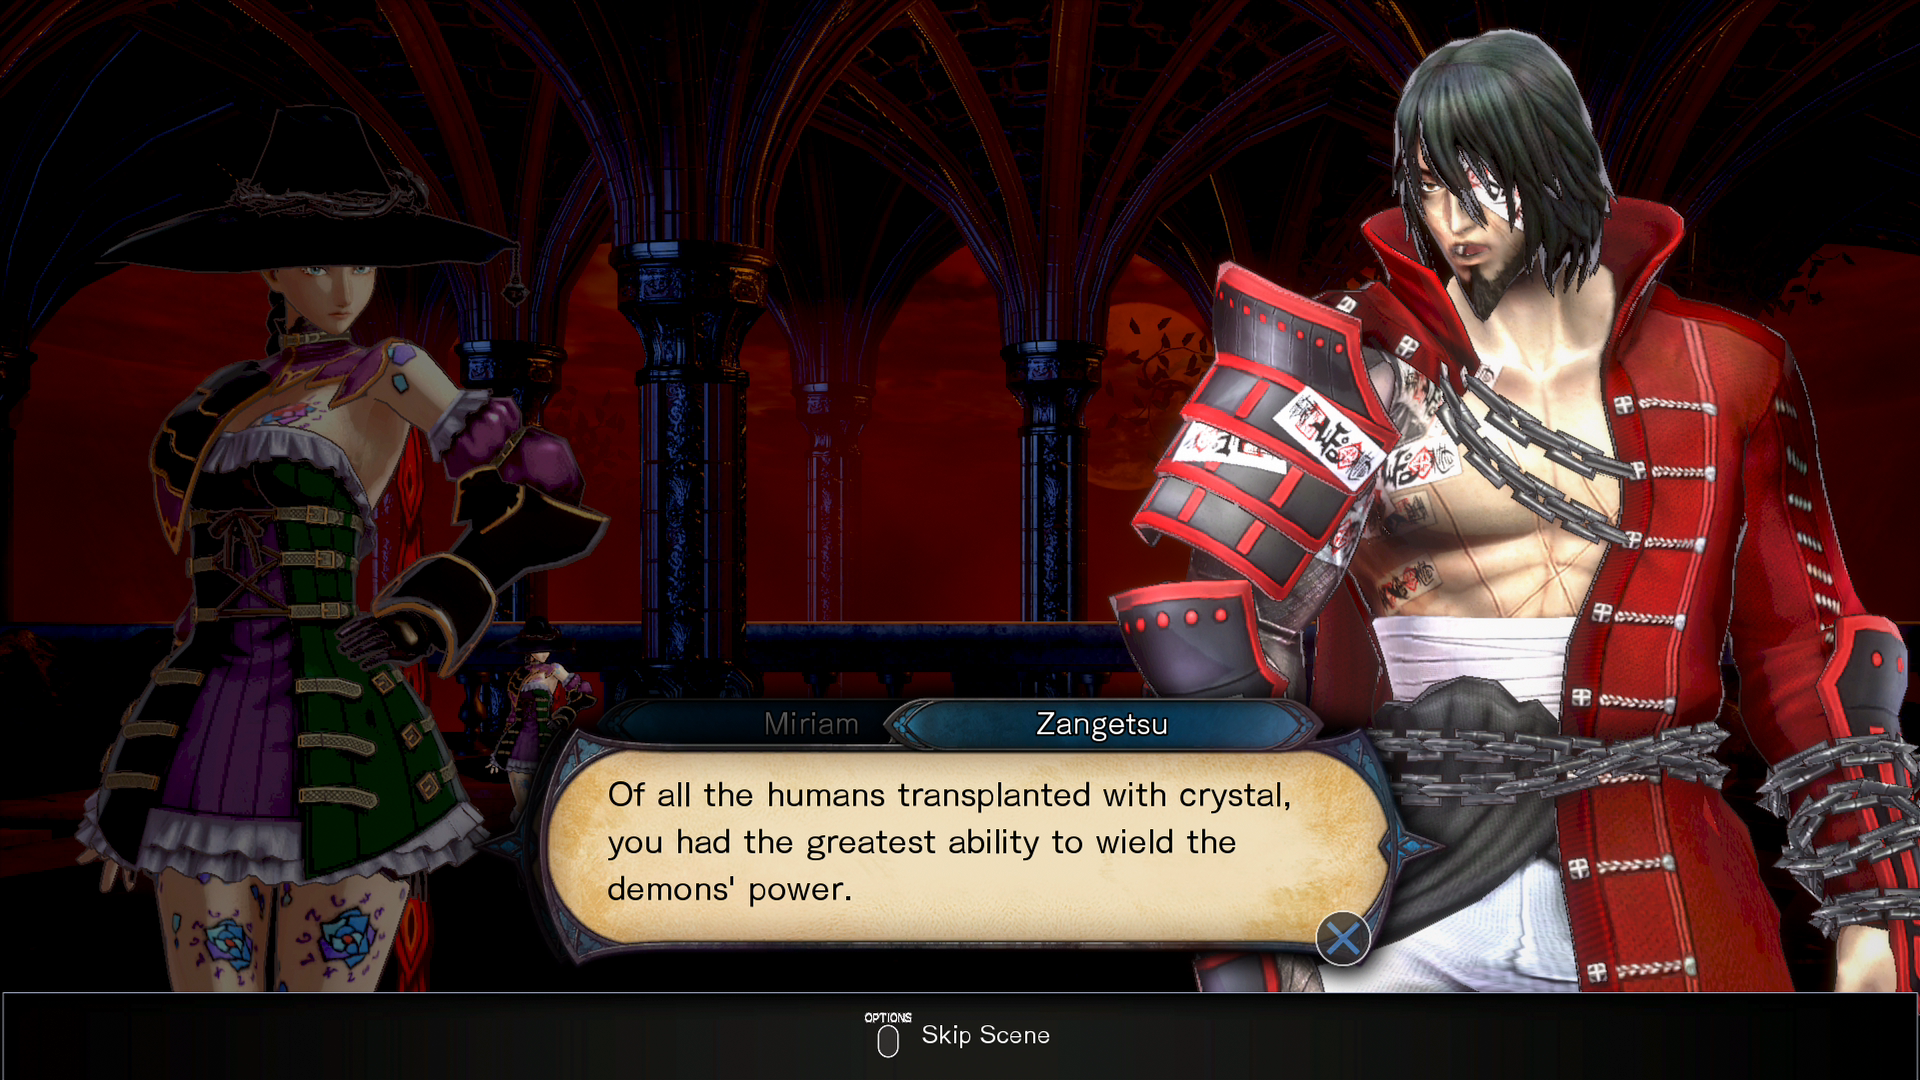 Bloodstained: Ritual of the Night Review - The Night is